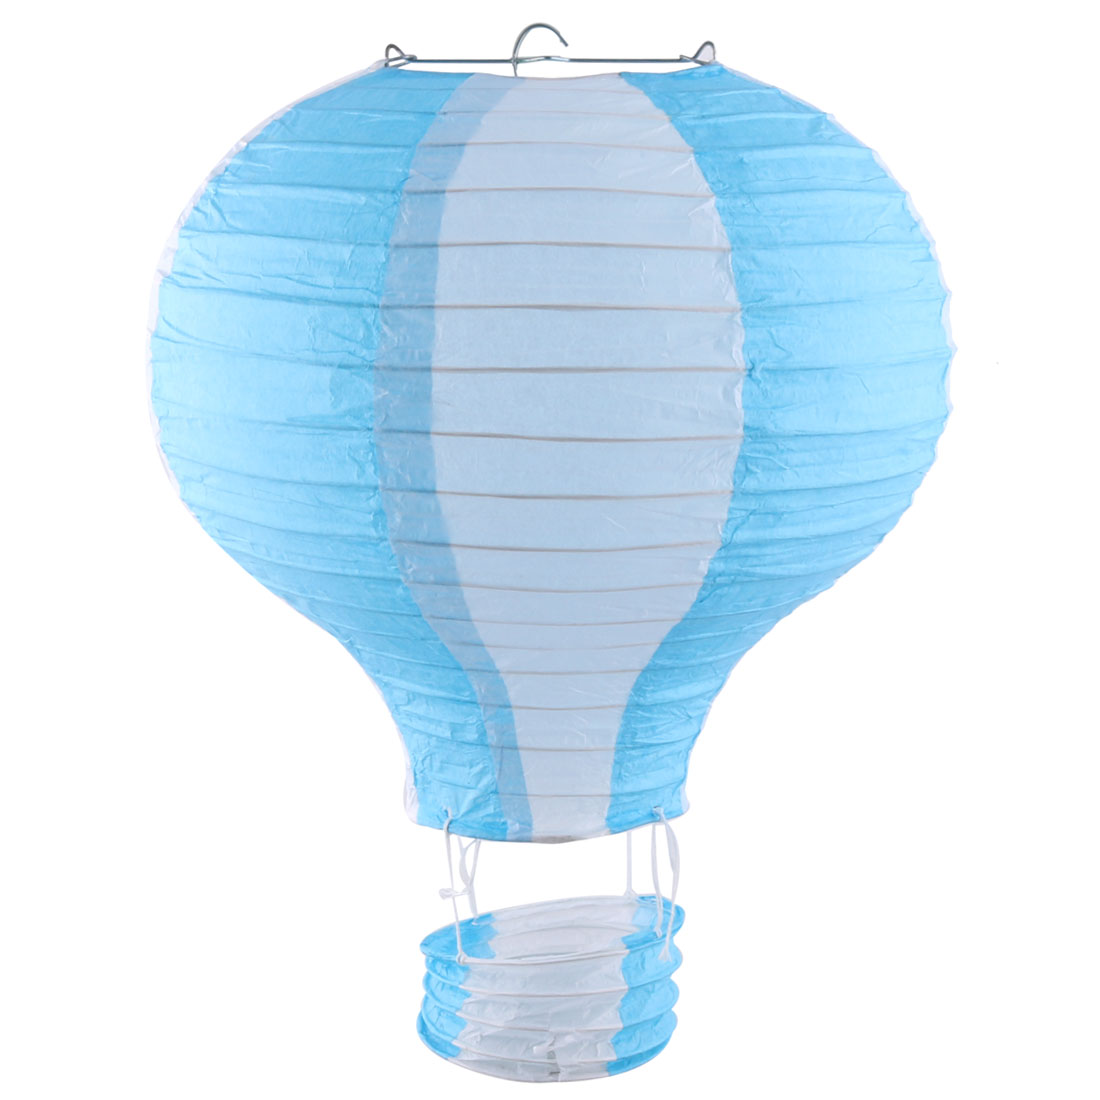 Restaurant Party Paper Lightless Hanging DIY Decor Hot Air Balloon Lantern Blue White 10 Inch Dia